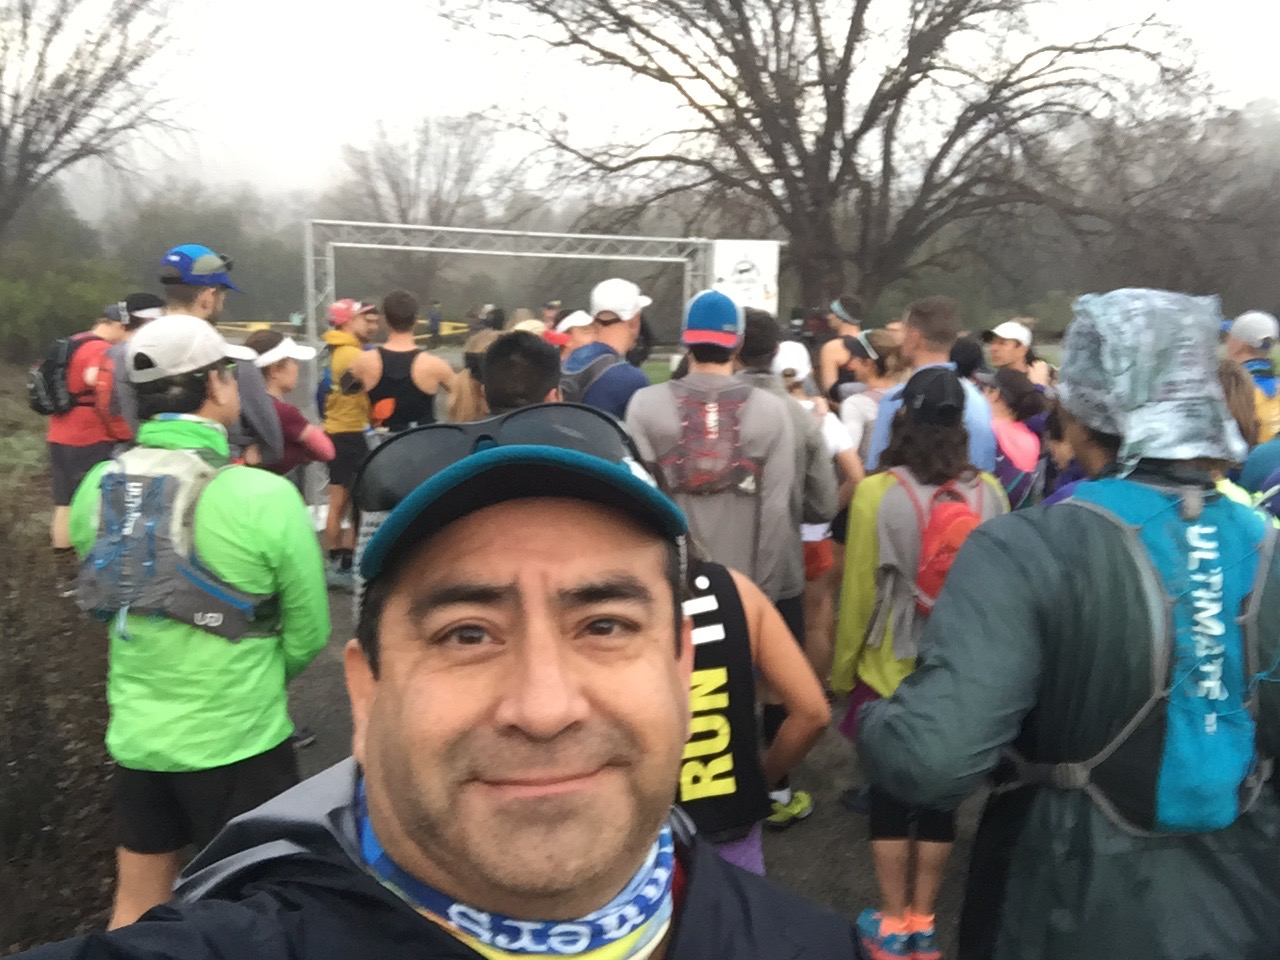 At the Sean O'Brien Marathon/50k starting line - 2017